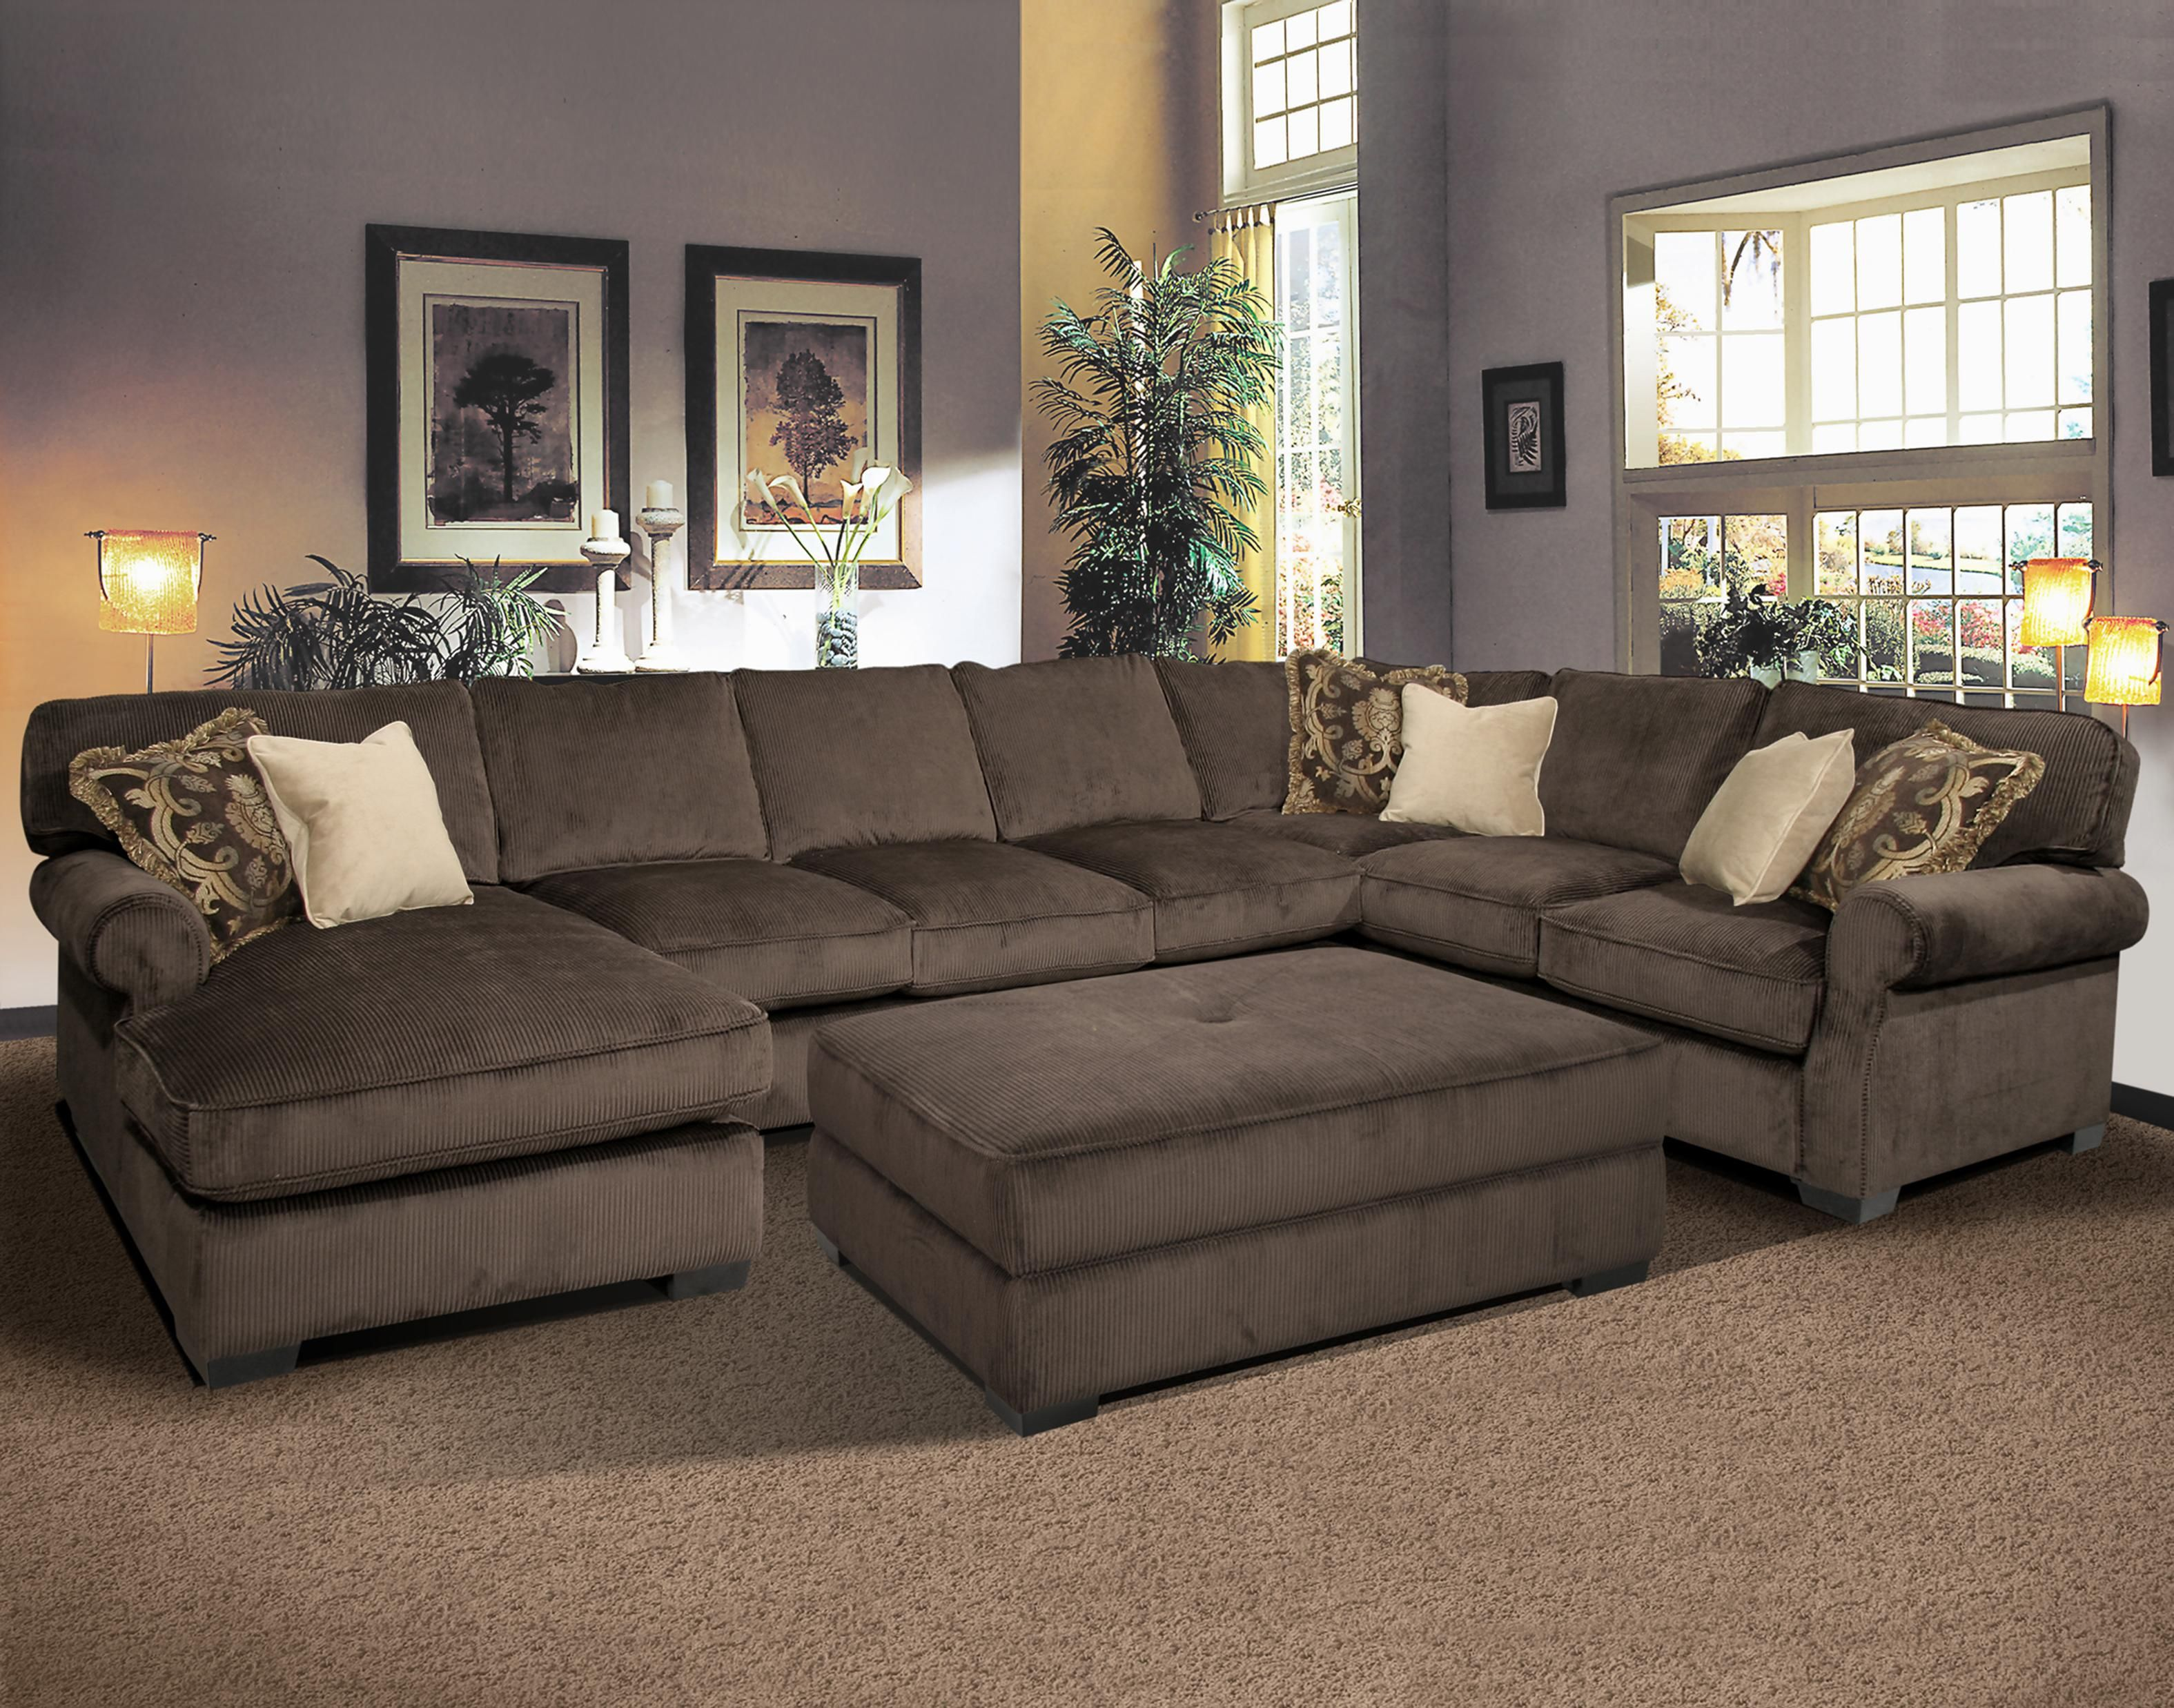 Microfiber Sectional Sofa Grand Island Oversized Cocktail Ottoman For Sectional Sofa By